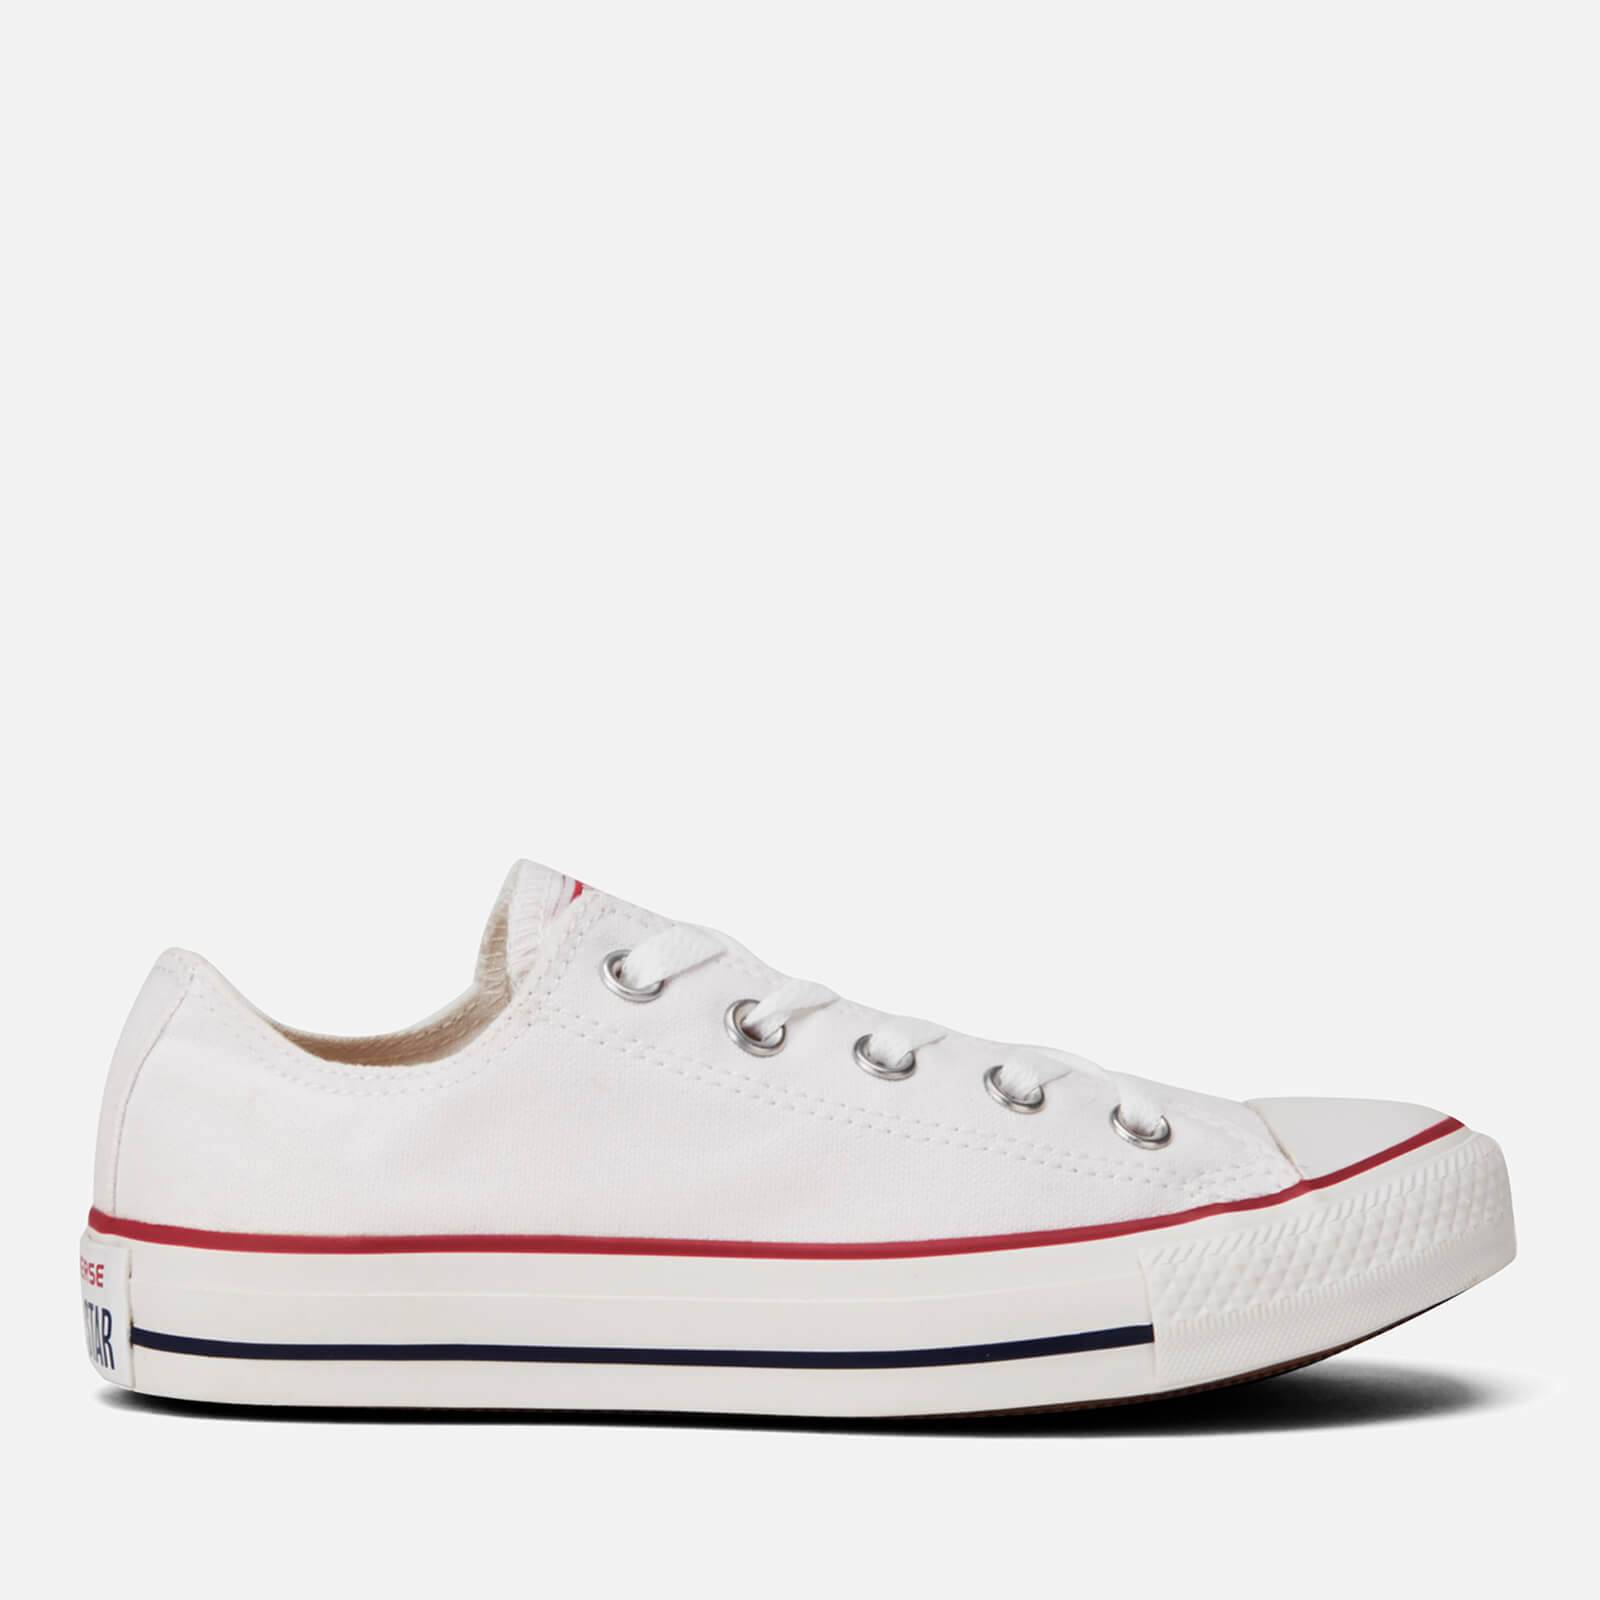 Converse Chuck Taylor All Star Ox Trainers - Optical White - UK 9